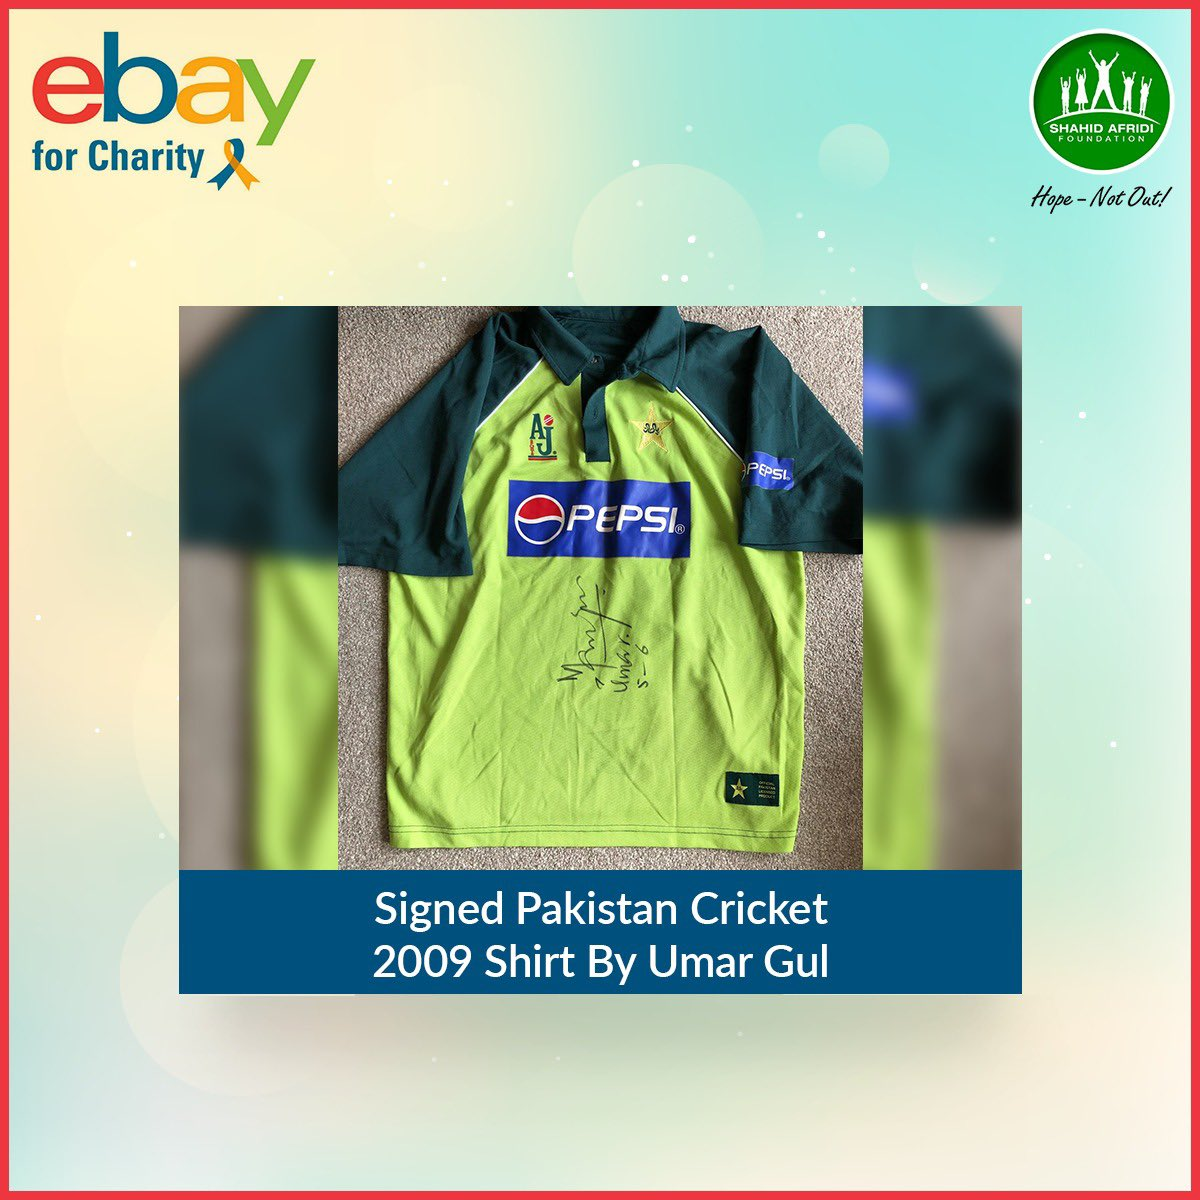 Saf Uk On Twitter Place Your Bid For This Mdk Gul Signed Shirt Along With Other Items Currently Listed On Our Ebay Page Last Few Hours Remain All Proceeds Go To Charity And